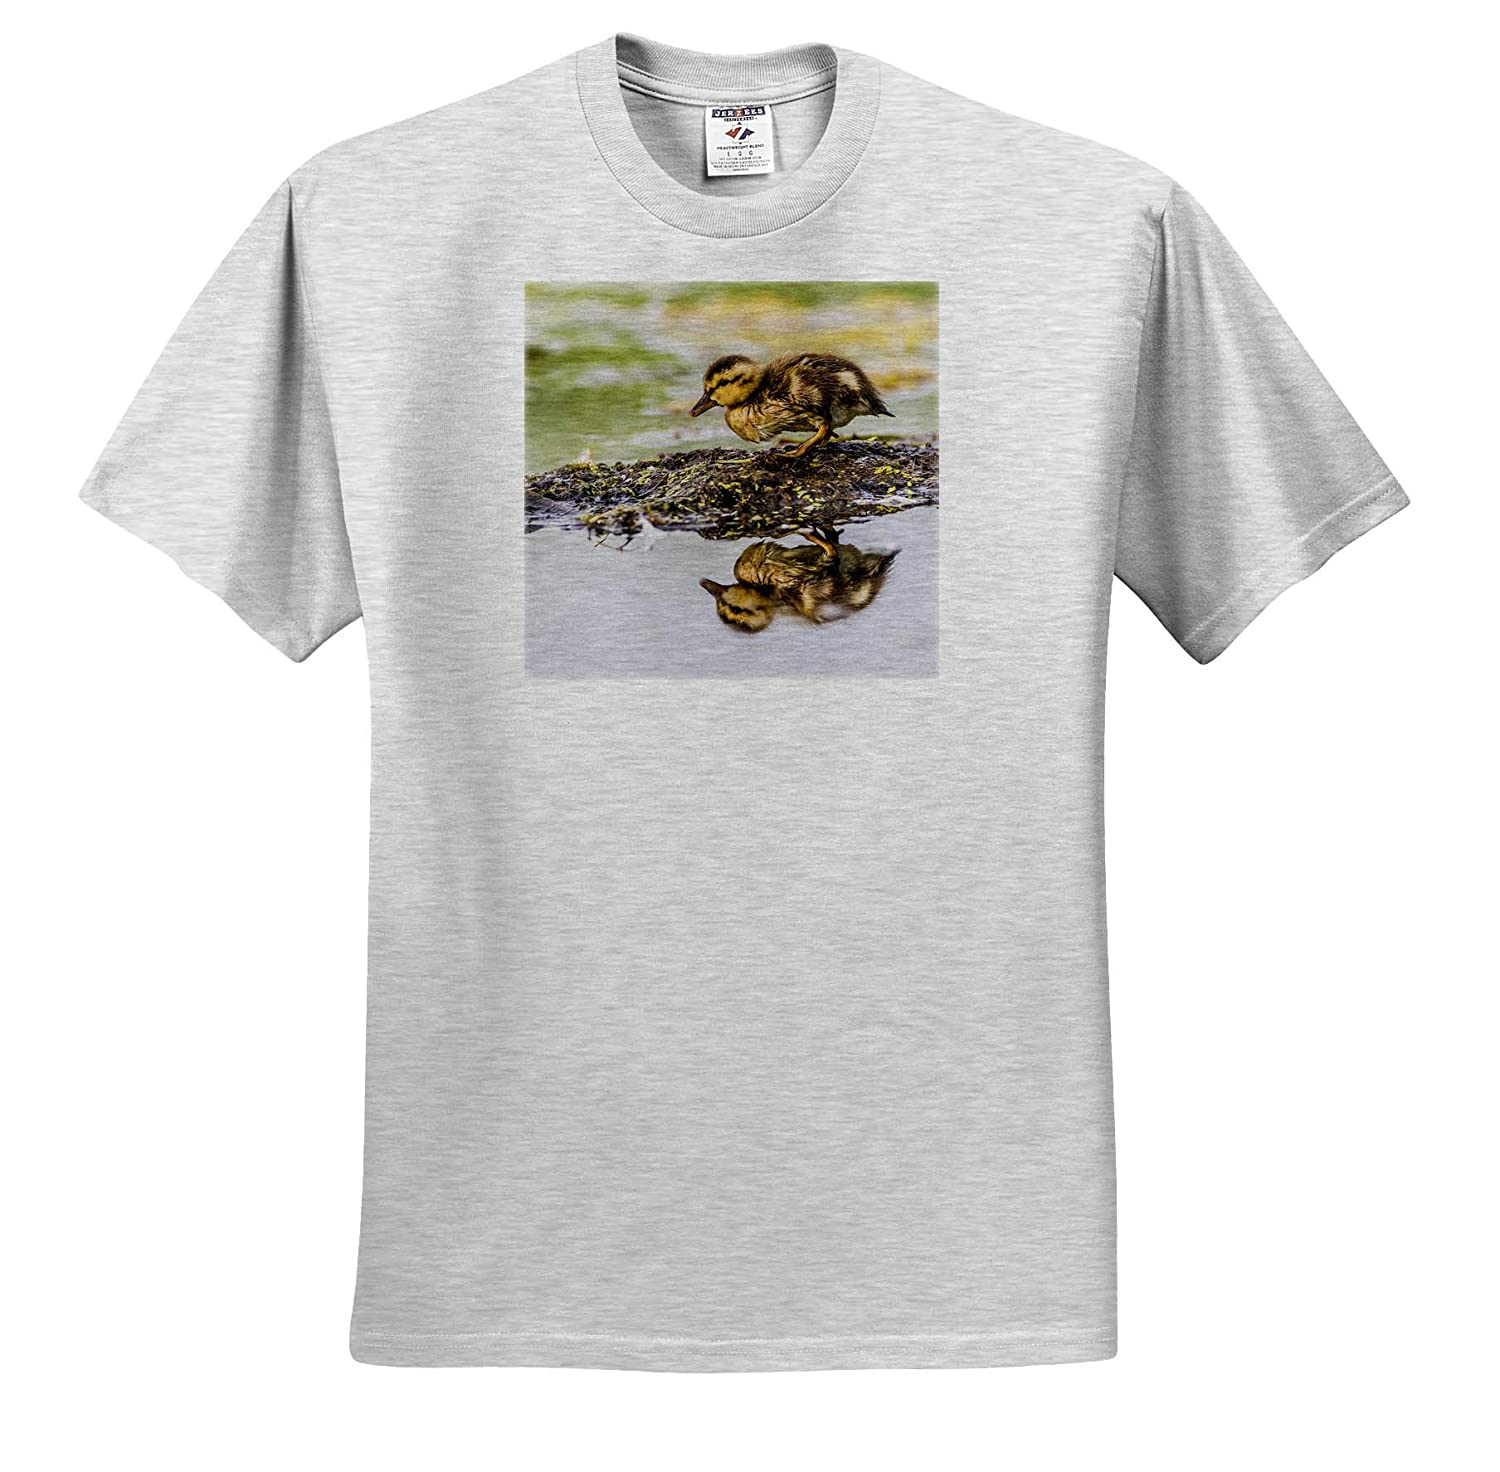 3dRose Danita Delimont Newly Hatched Cinnamon Teal Duckling - Adult T-Shirt XL ts/_315220 USA Ducks Wyoming